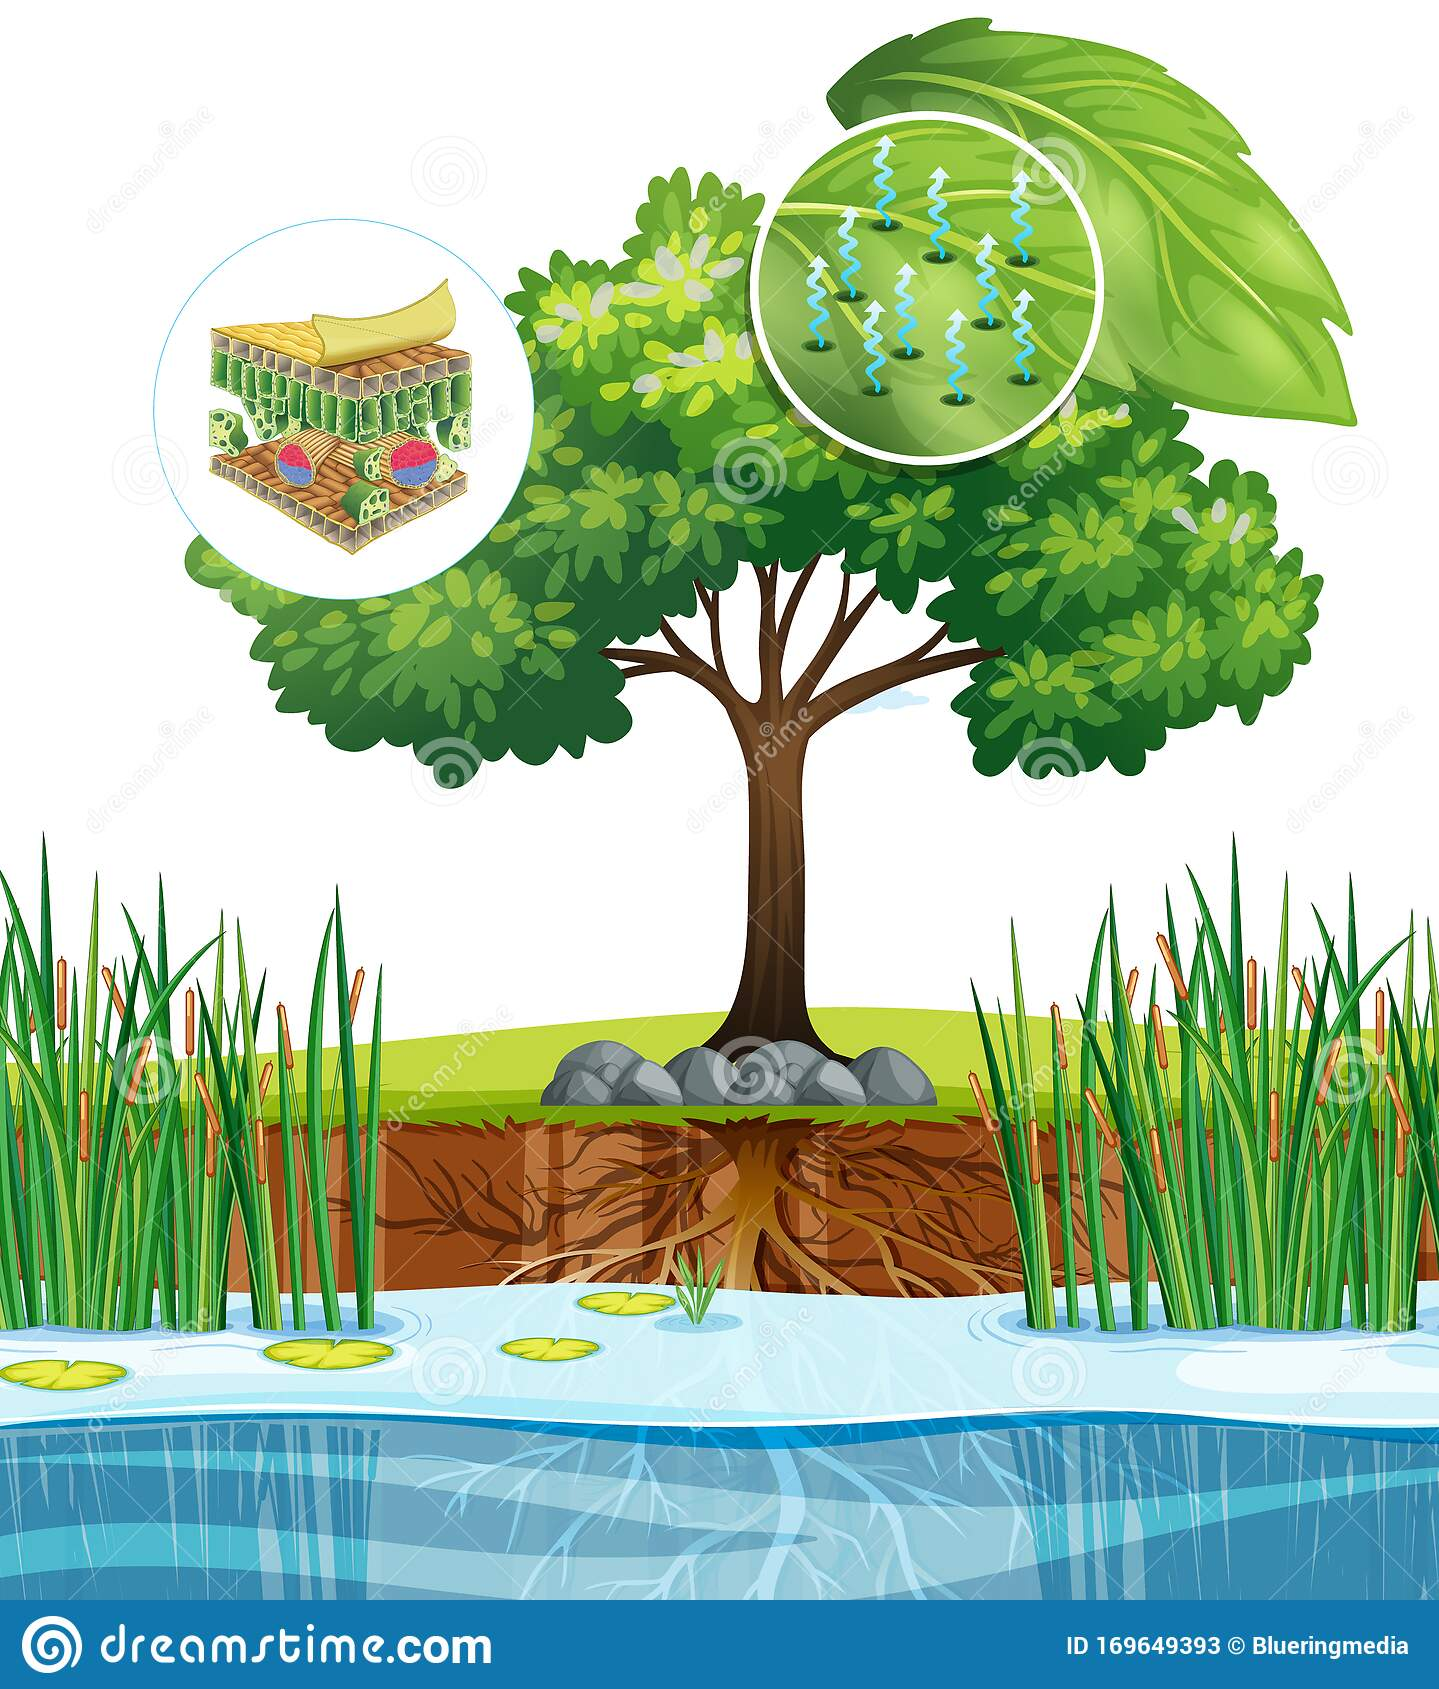 Diagram Showing Close Up Plant Cell From A Tree Stock Vector